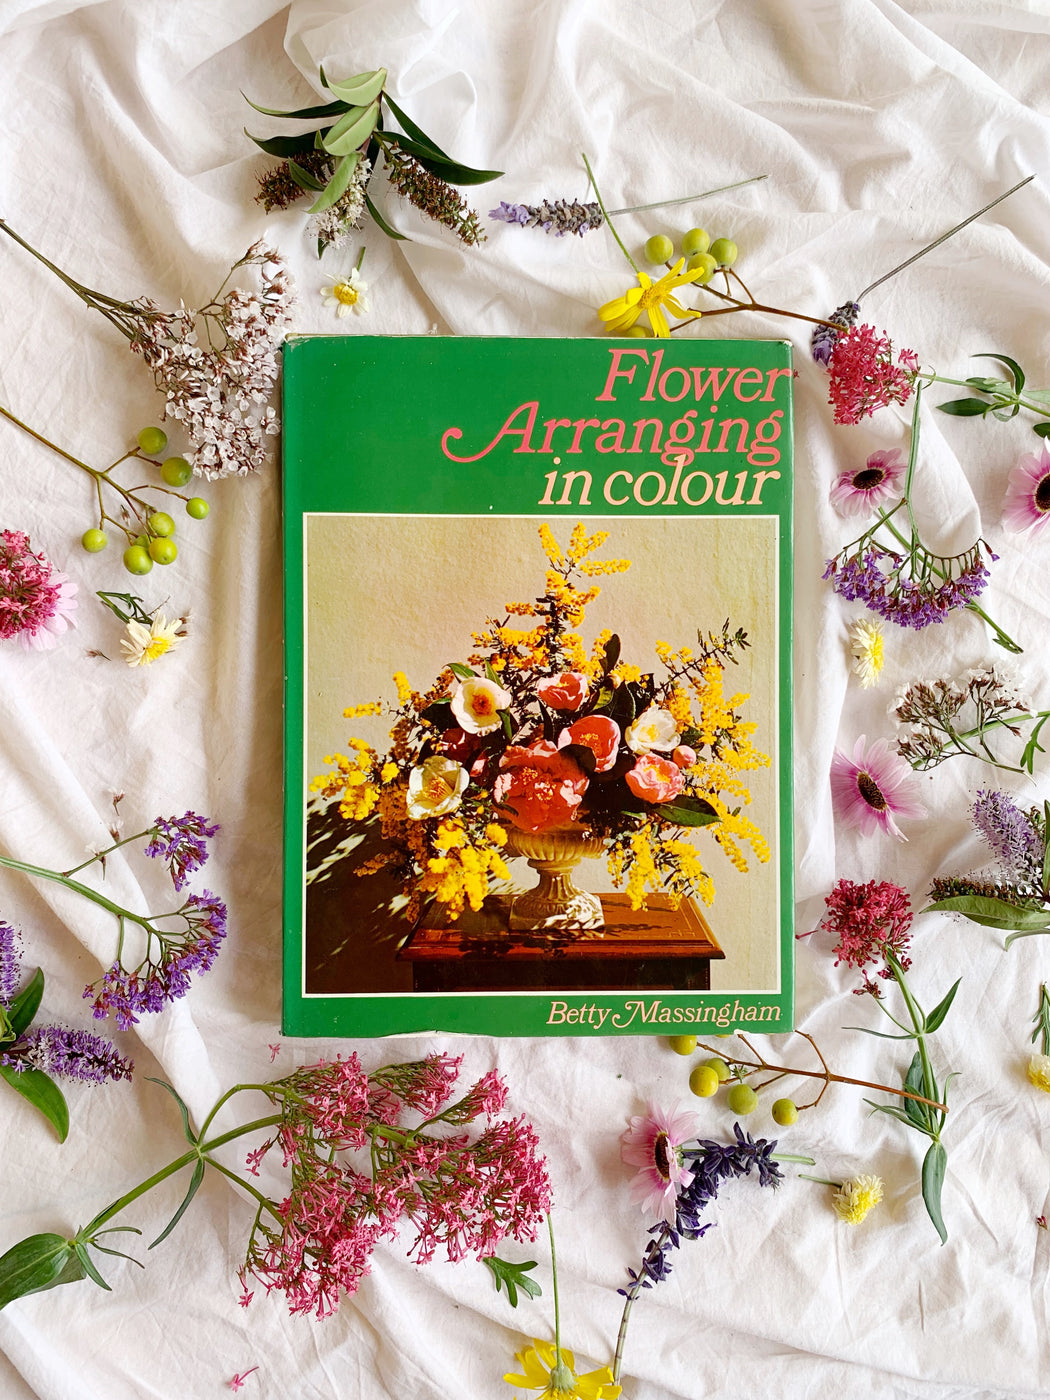 Flower Arranging in Colour by Betty Massingham - Storytellers Workshop